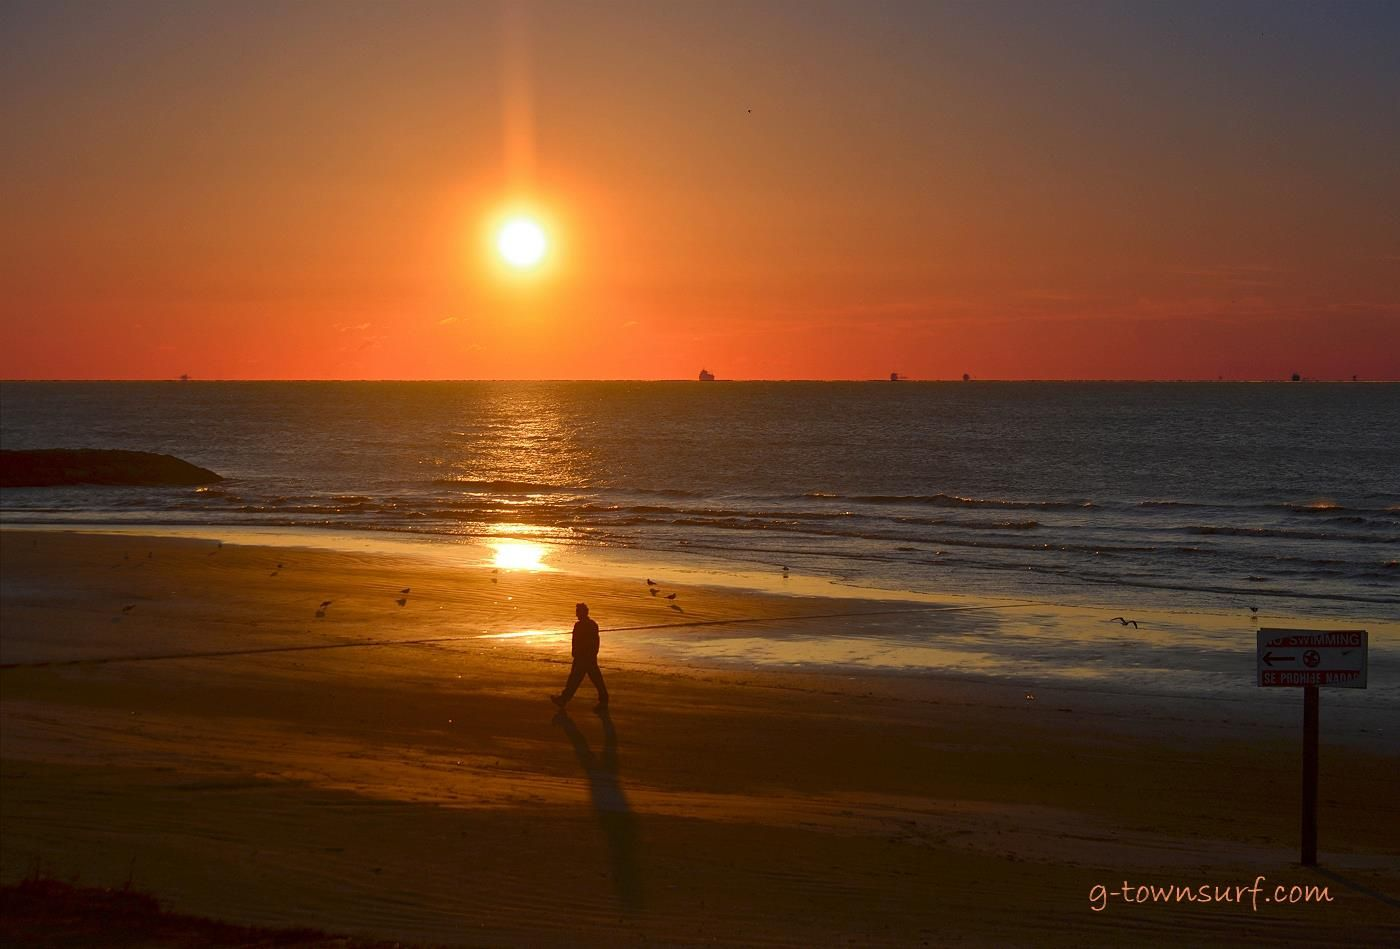 A quiet sunrise stroll on the beach in Galveston, Texas